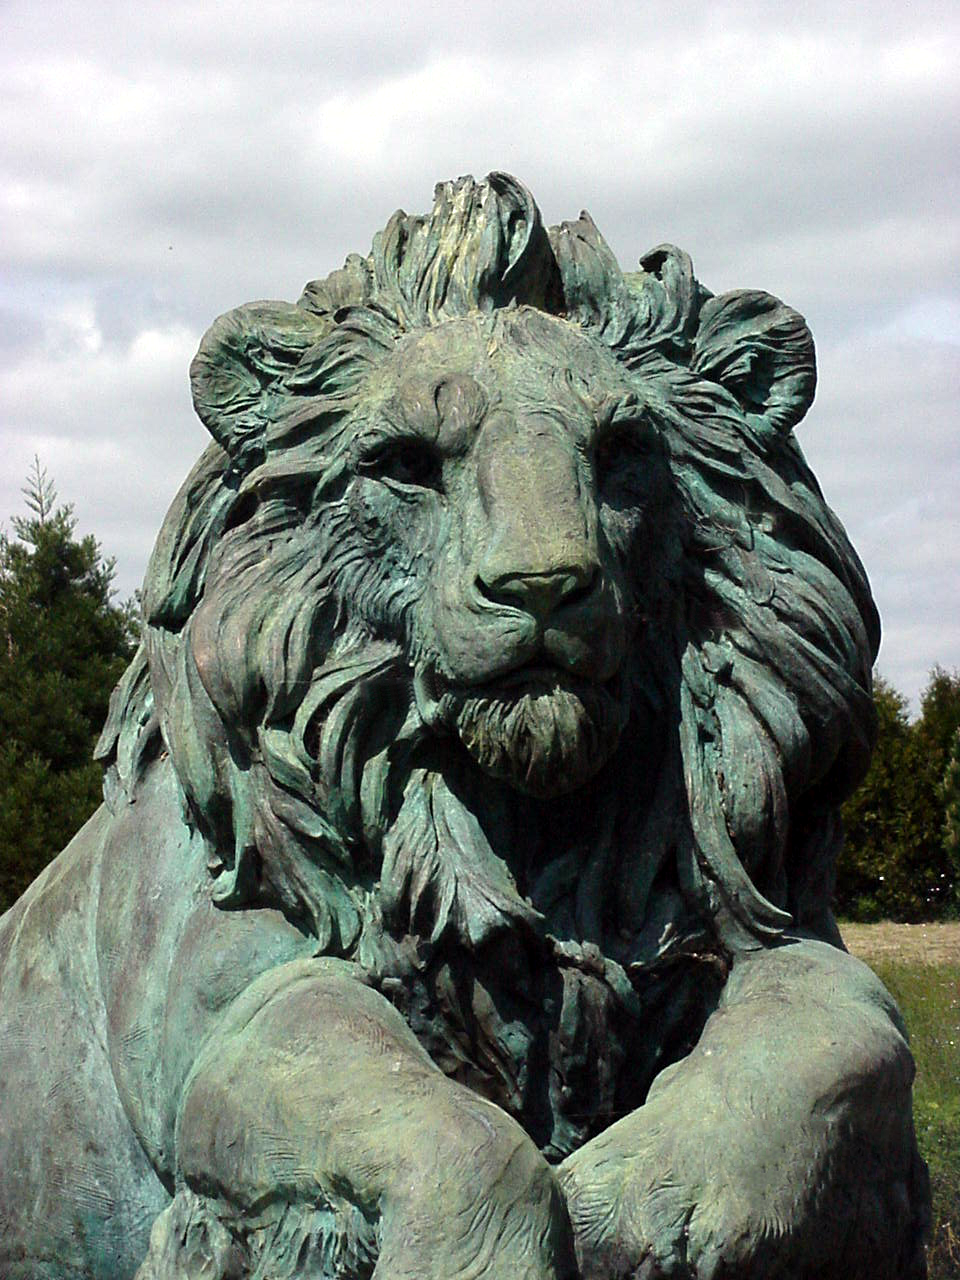 heroic lion front view with aged bronze classic patina